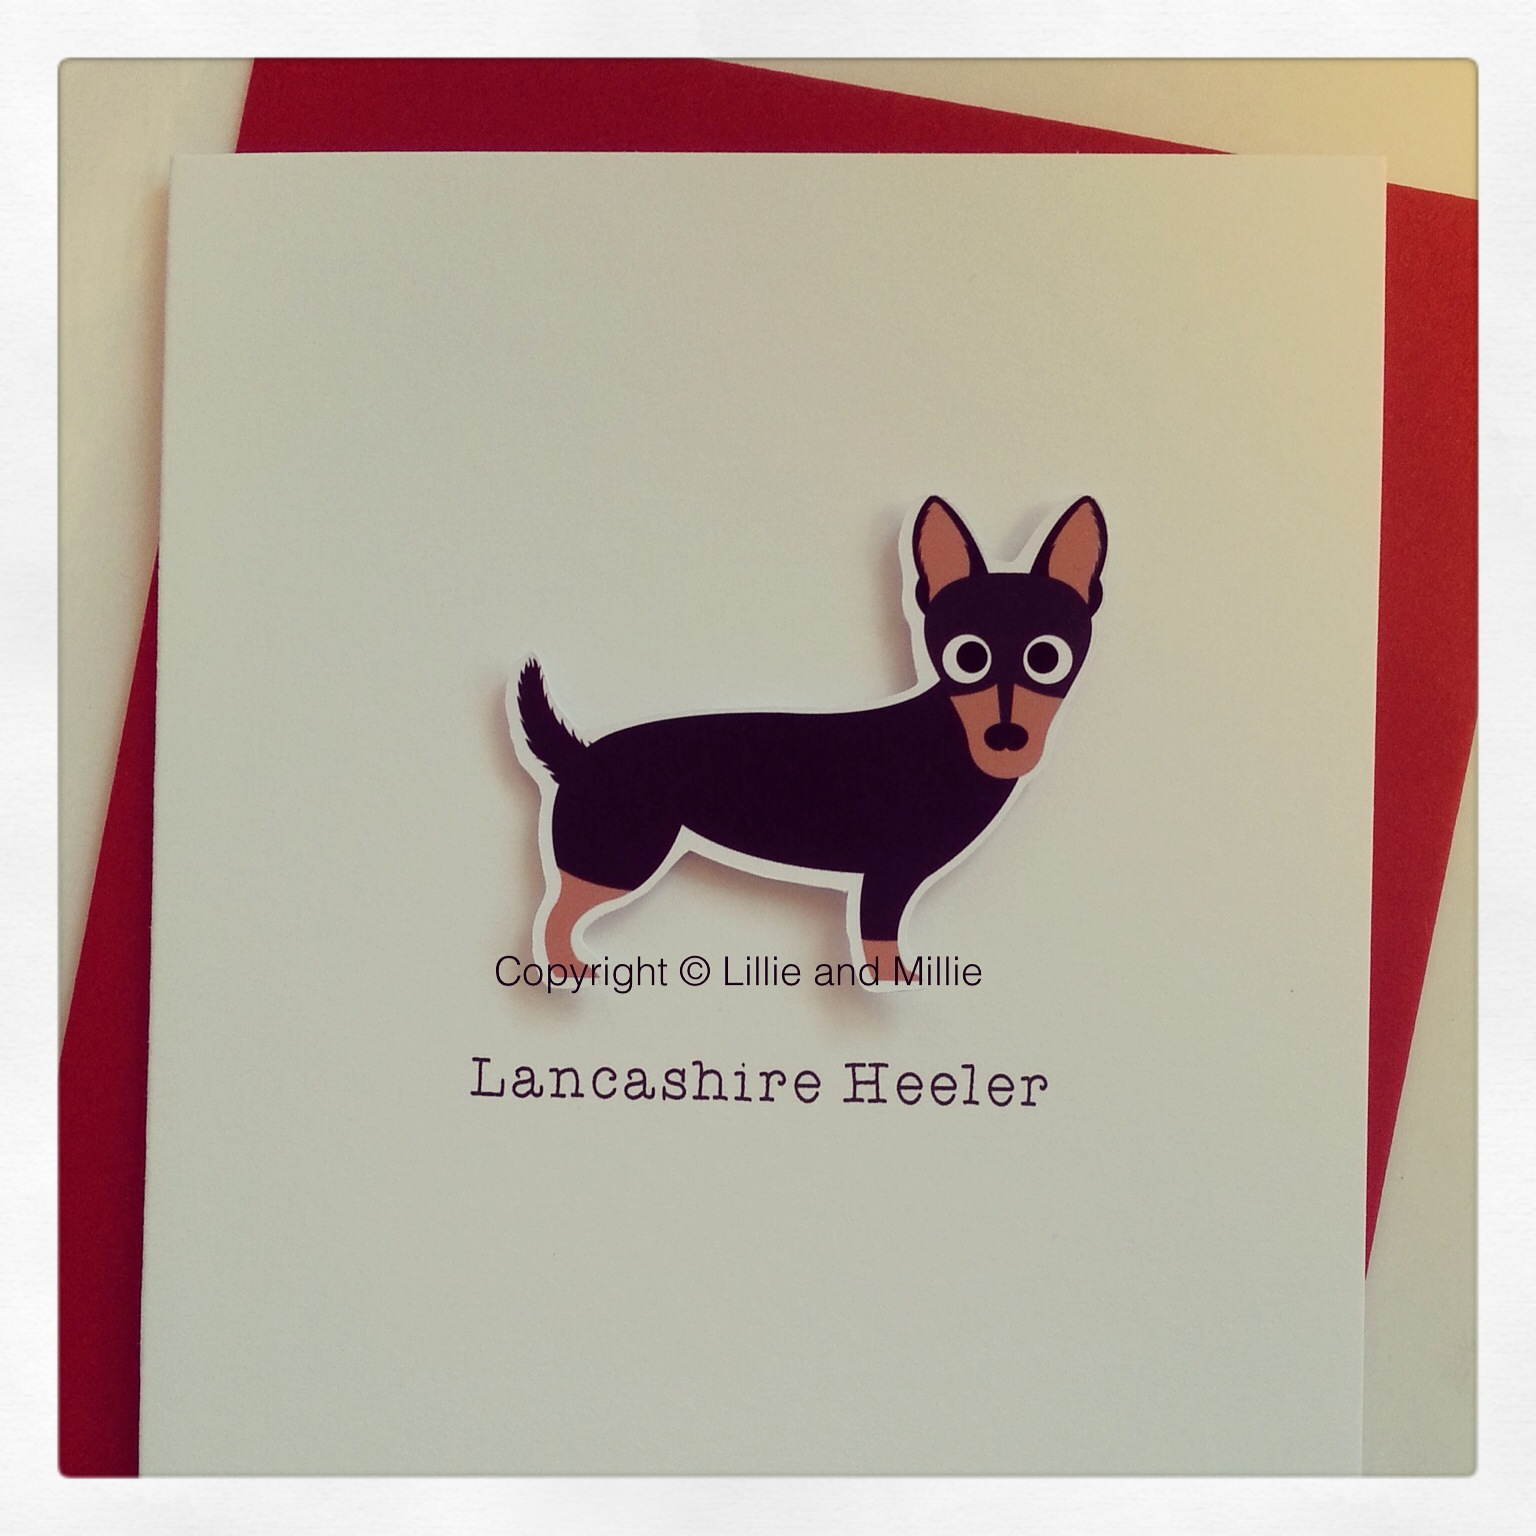 Cute and Cuddly Lancashire Heeler Greetings Card